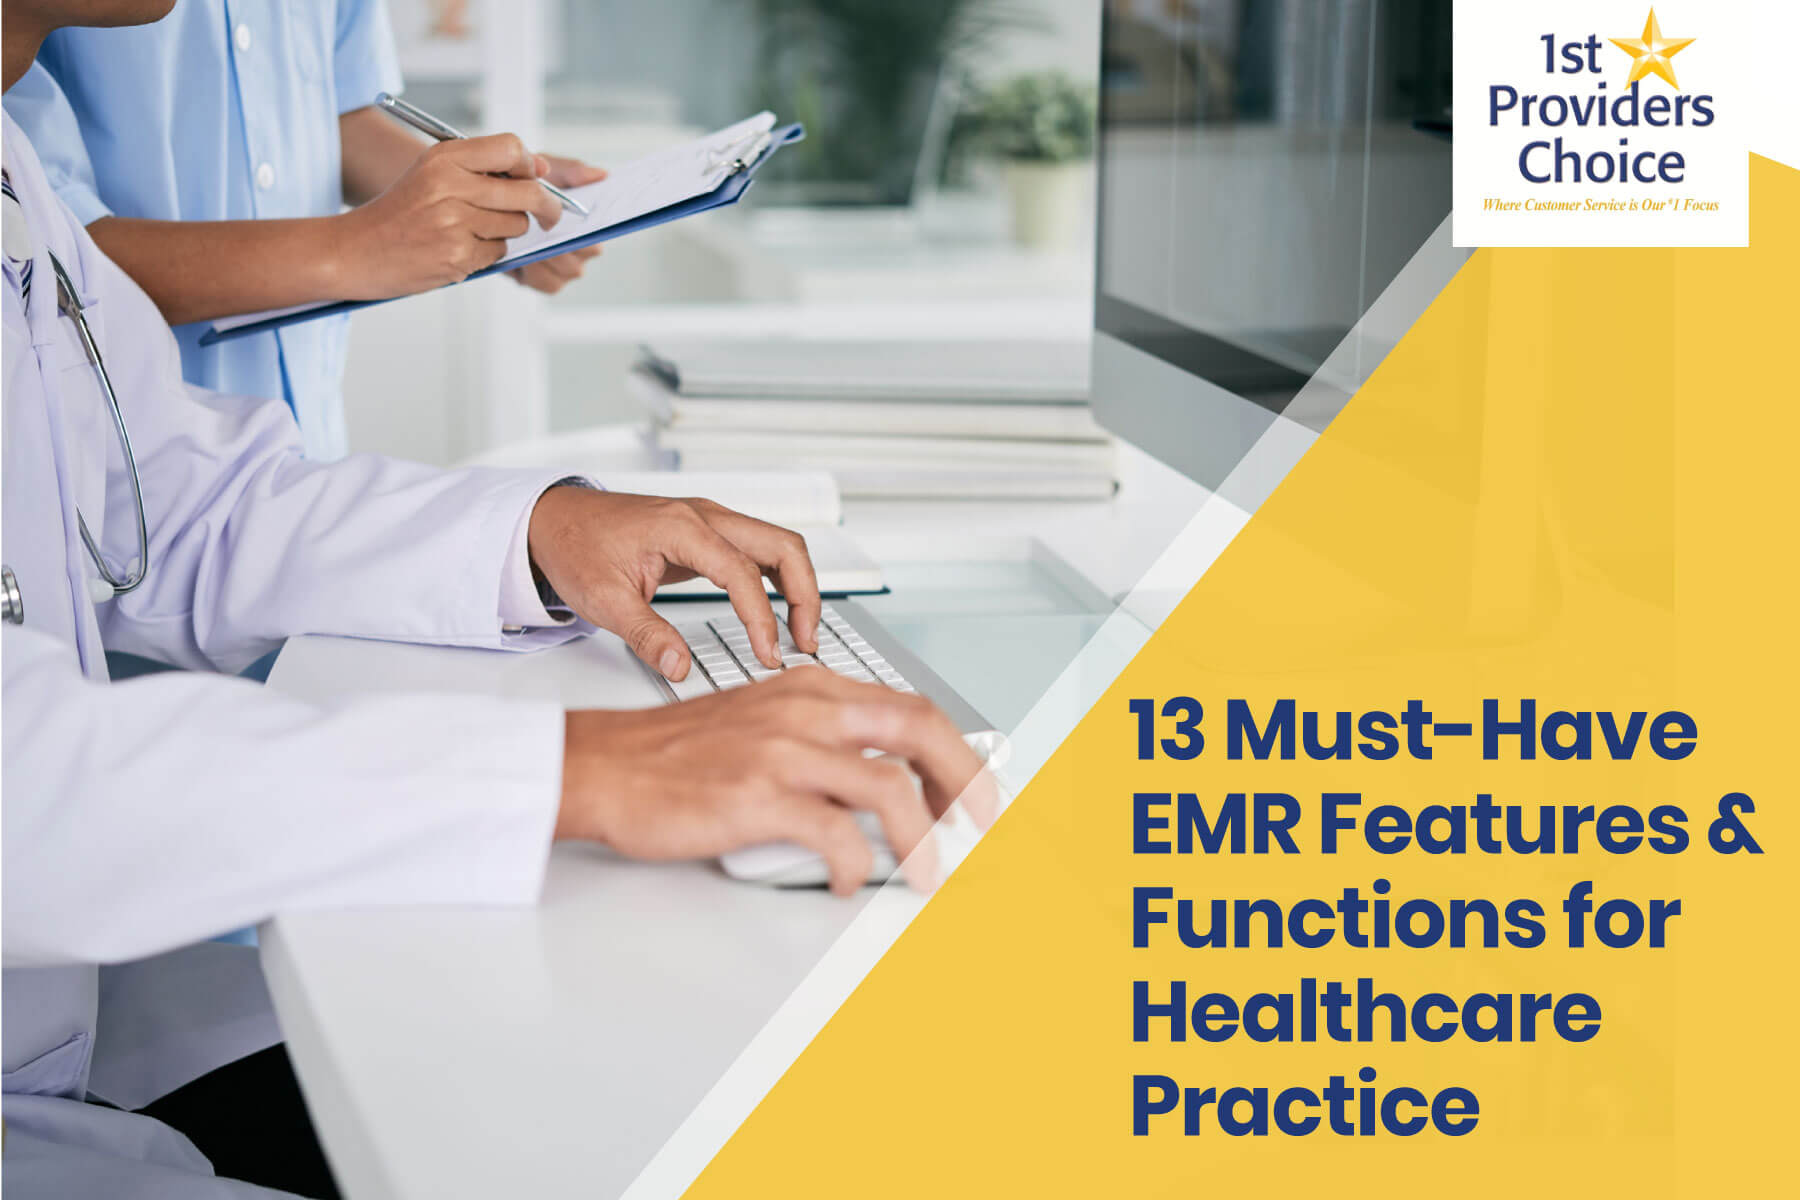 emr features and functions for healthcare practice